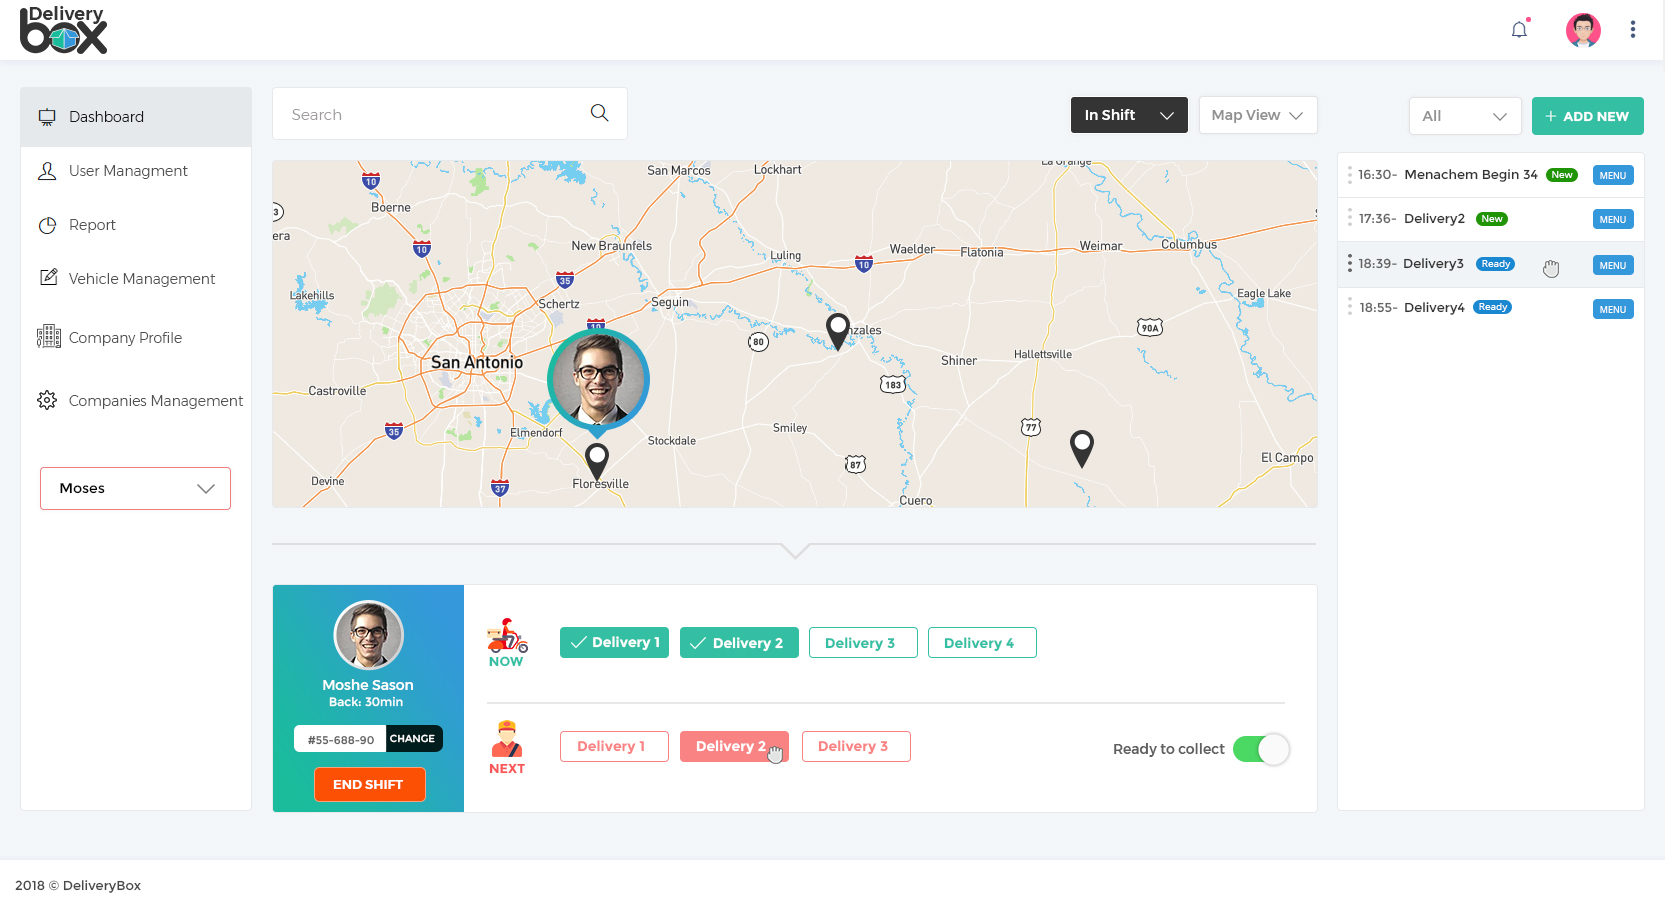 dashboard-map-view